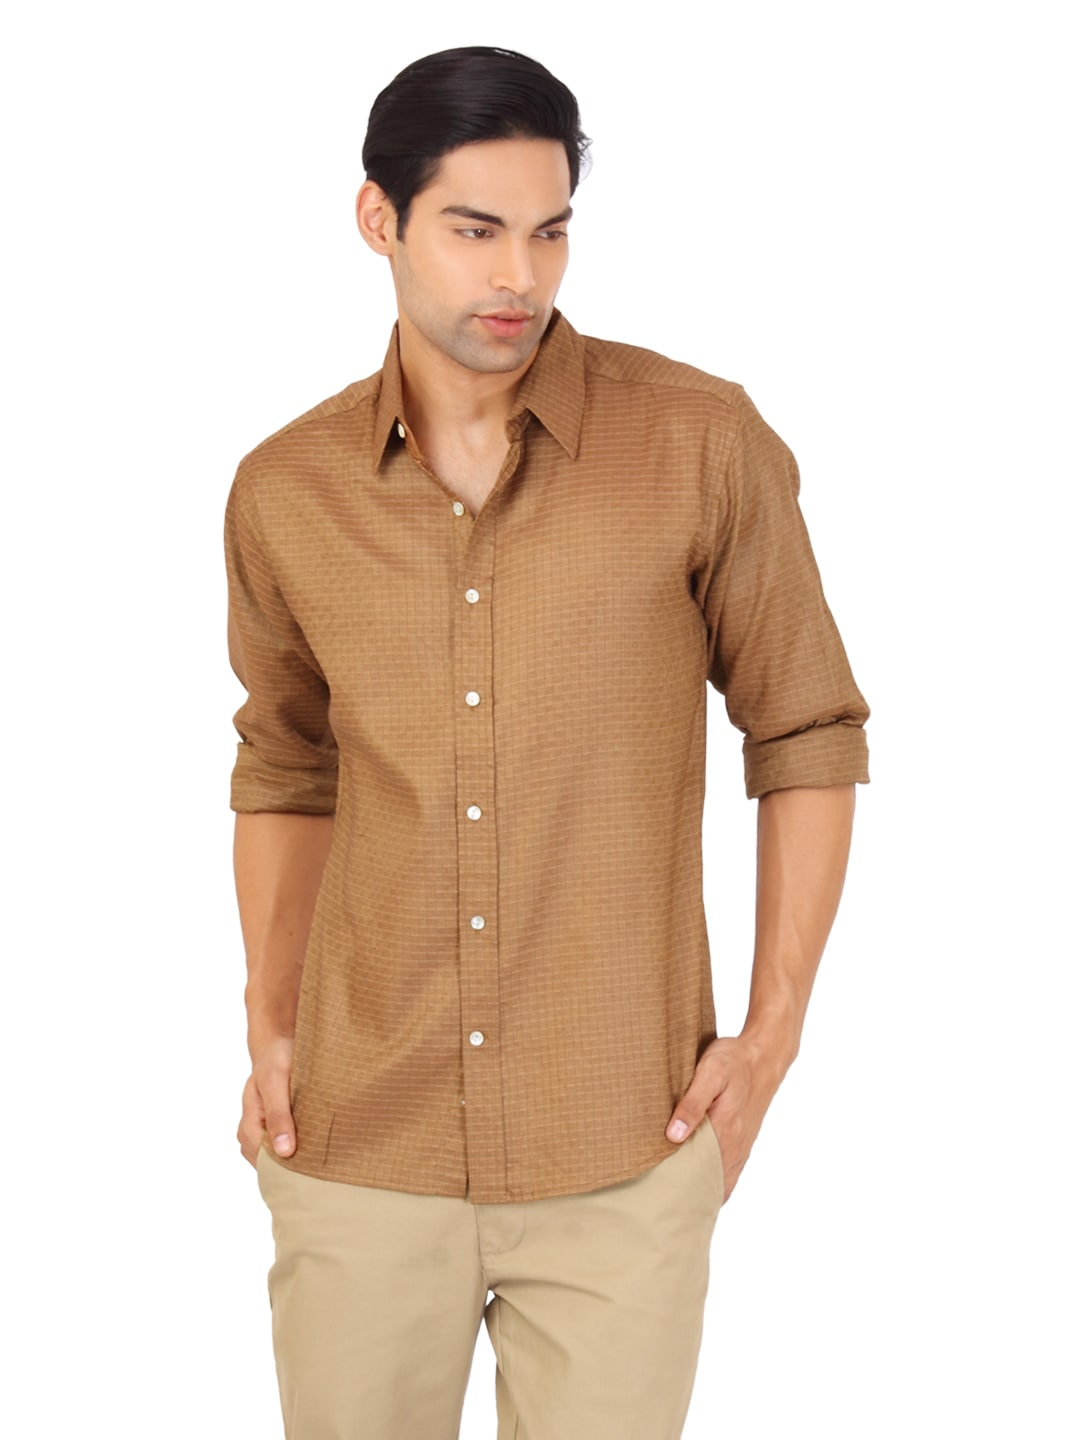 Brown shirt t shirt design database for Black brown mens shirts